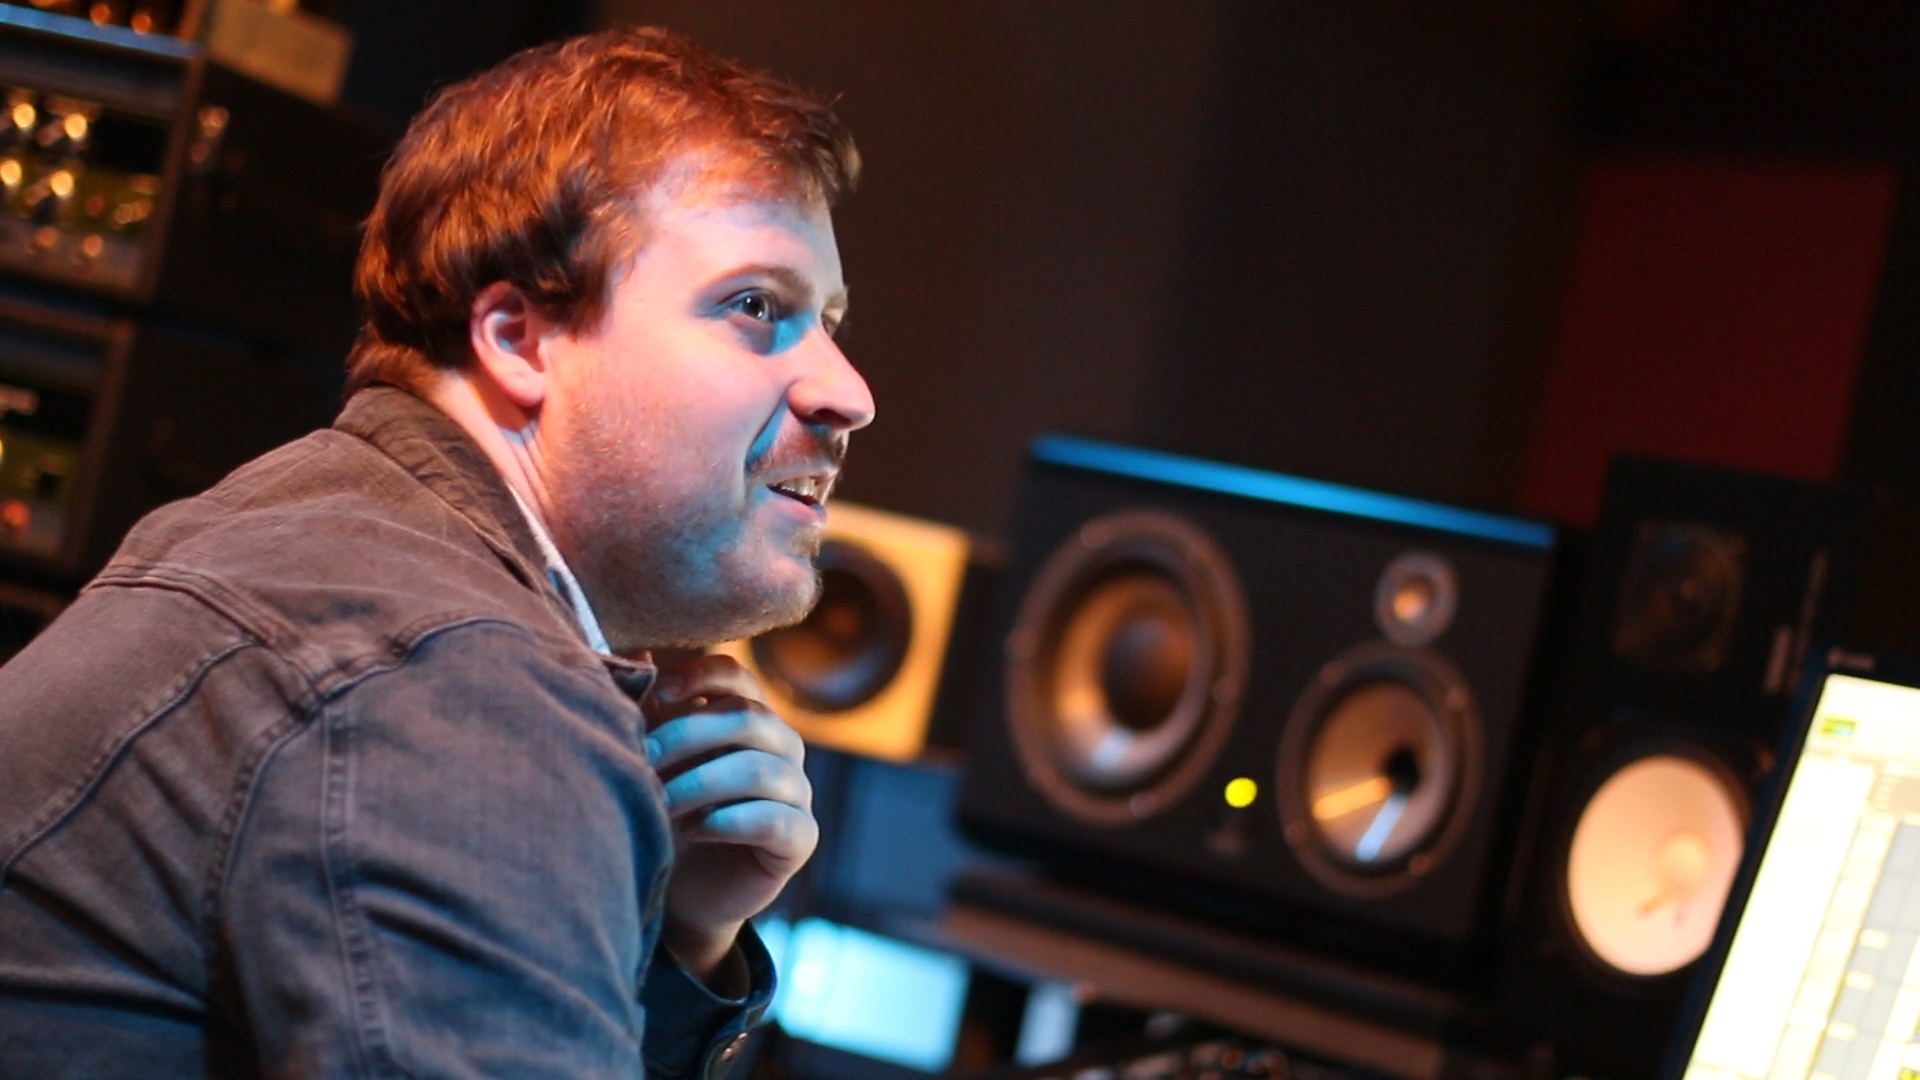 Producer, Engineer and Guitarist Jeff Kynoch